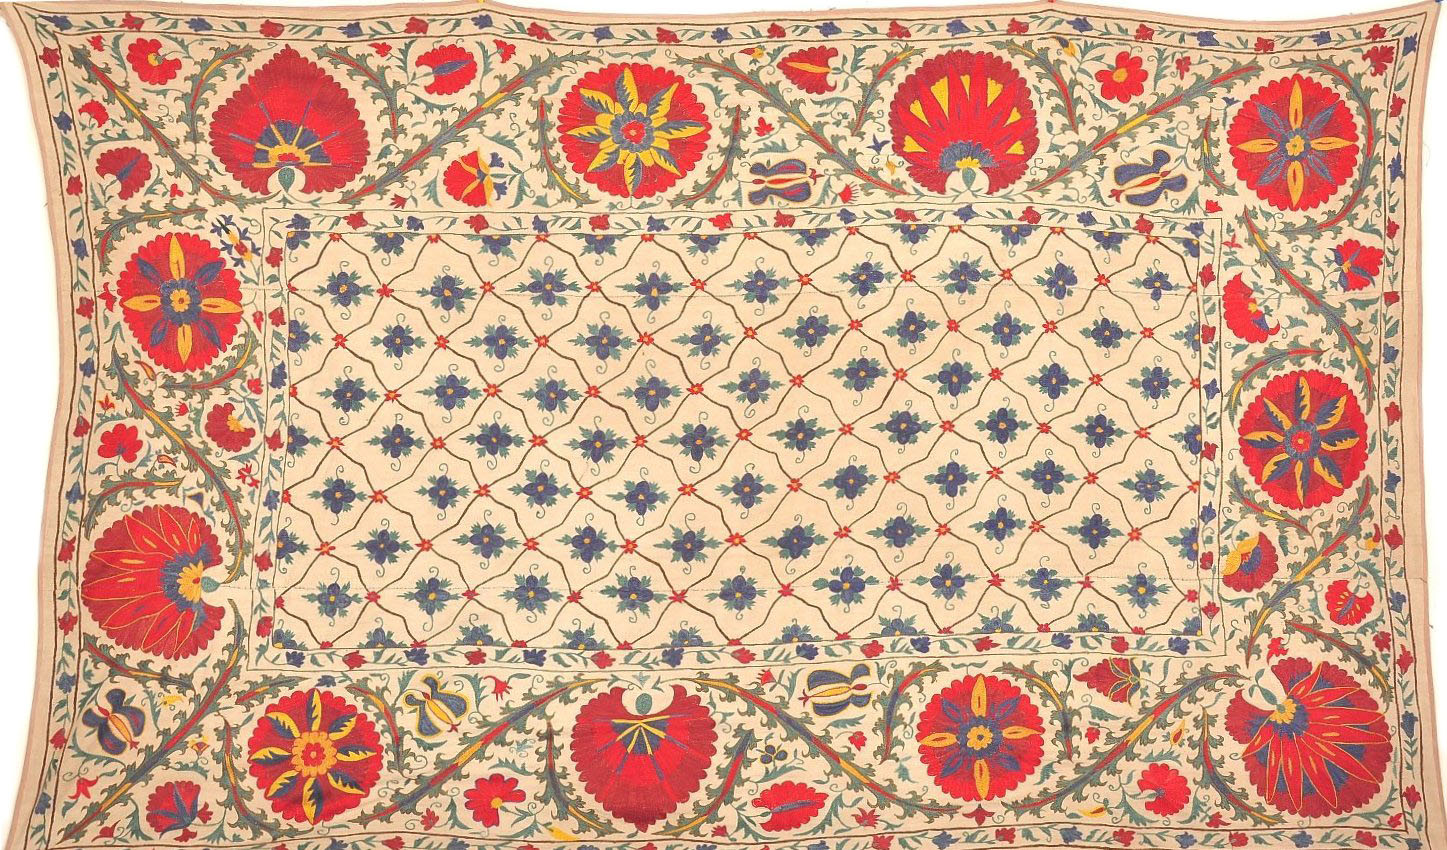 Suzani Hand Embroidery Tapestry Alesouk Grand Bazaar